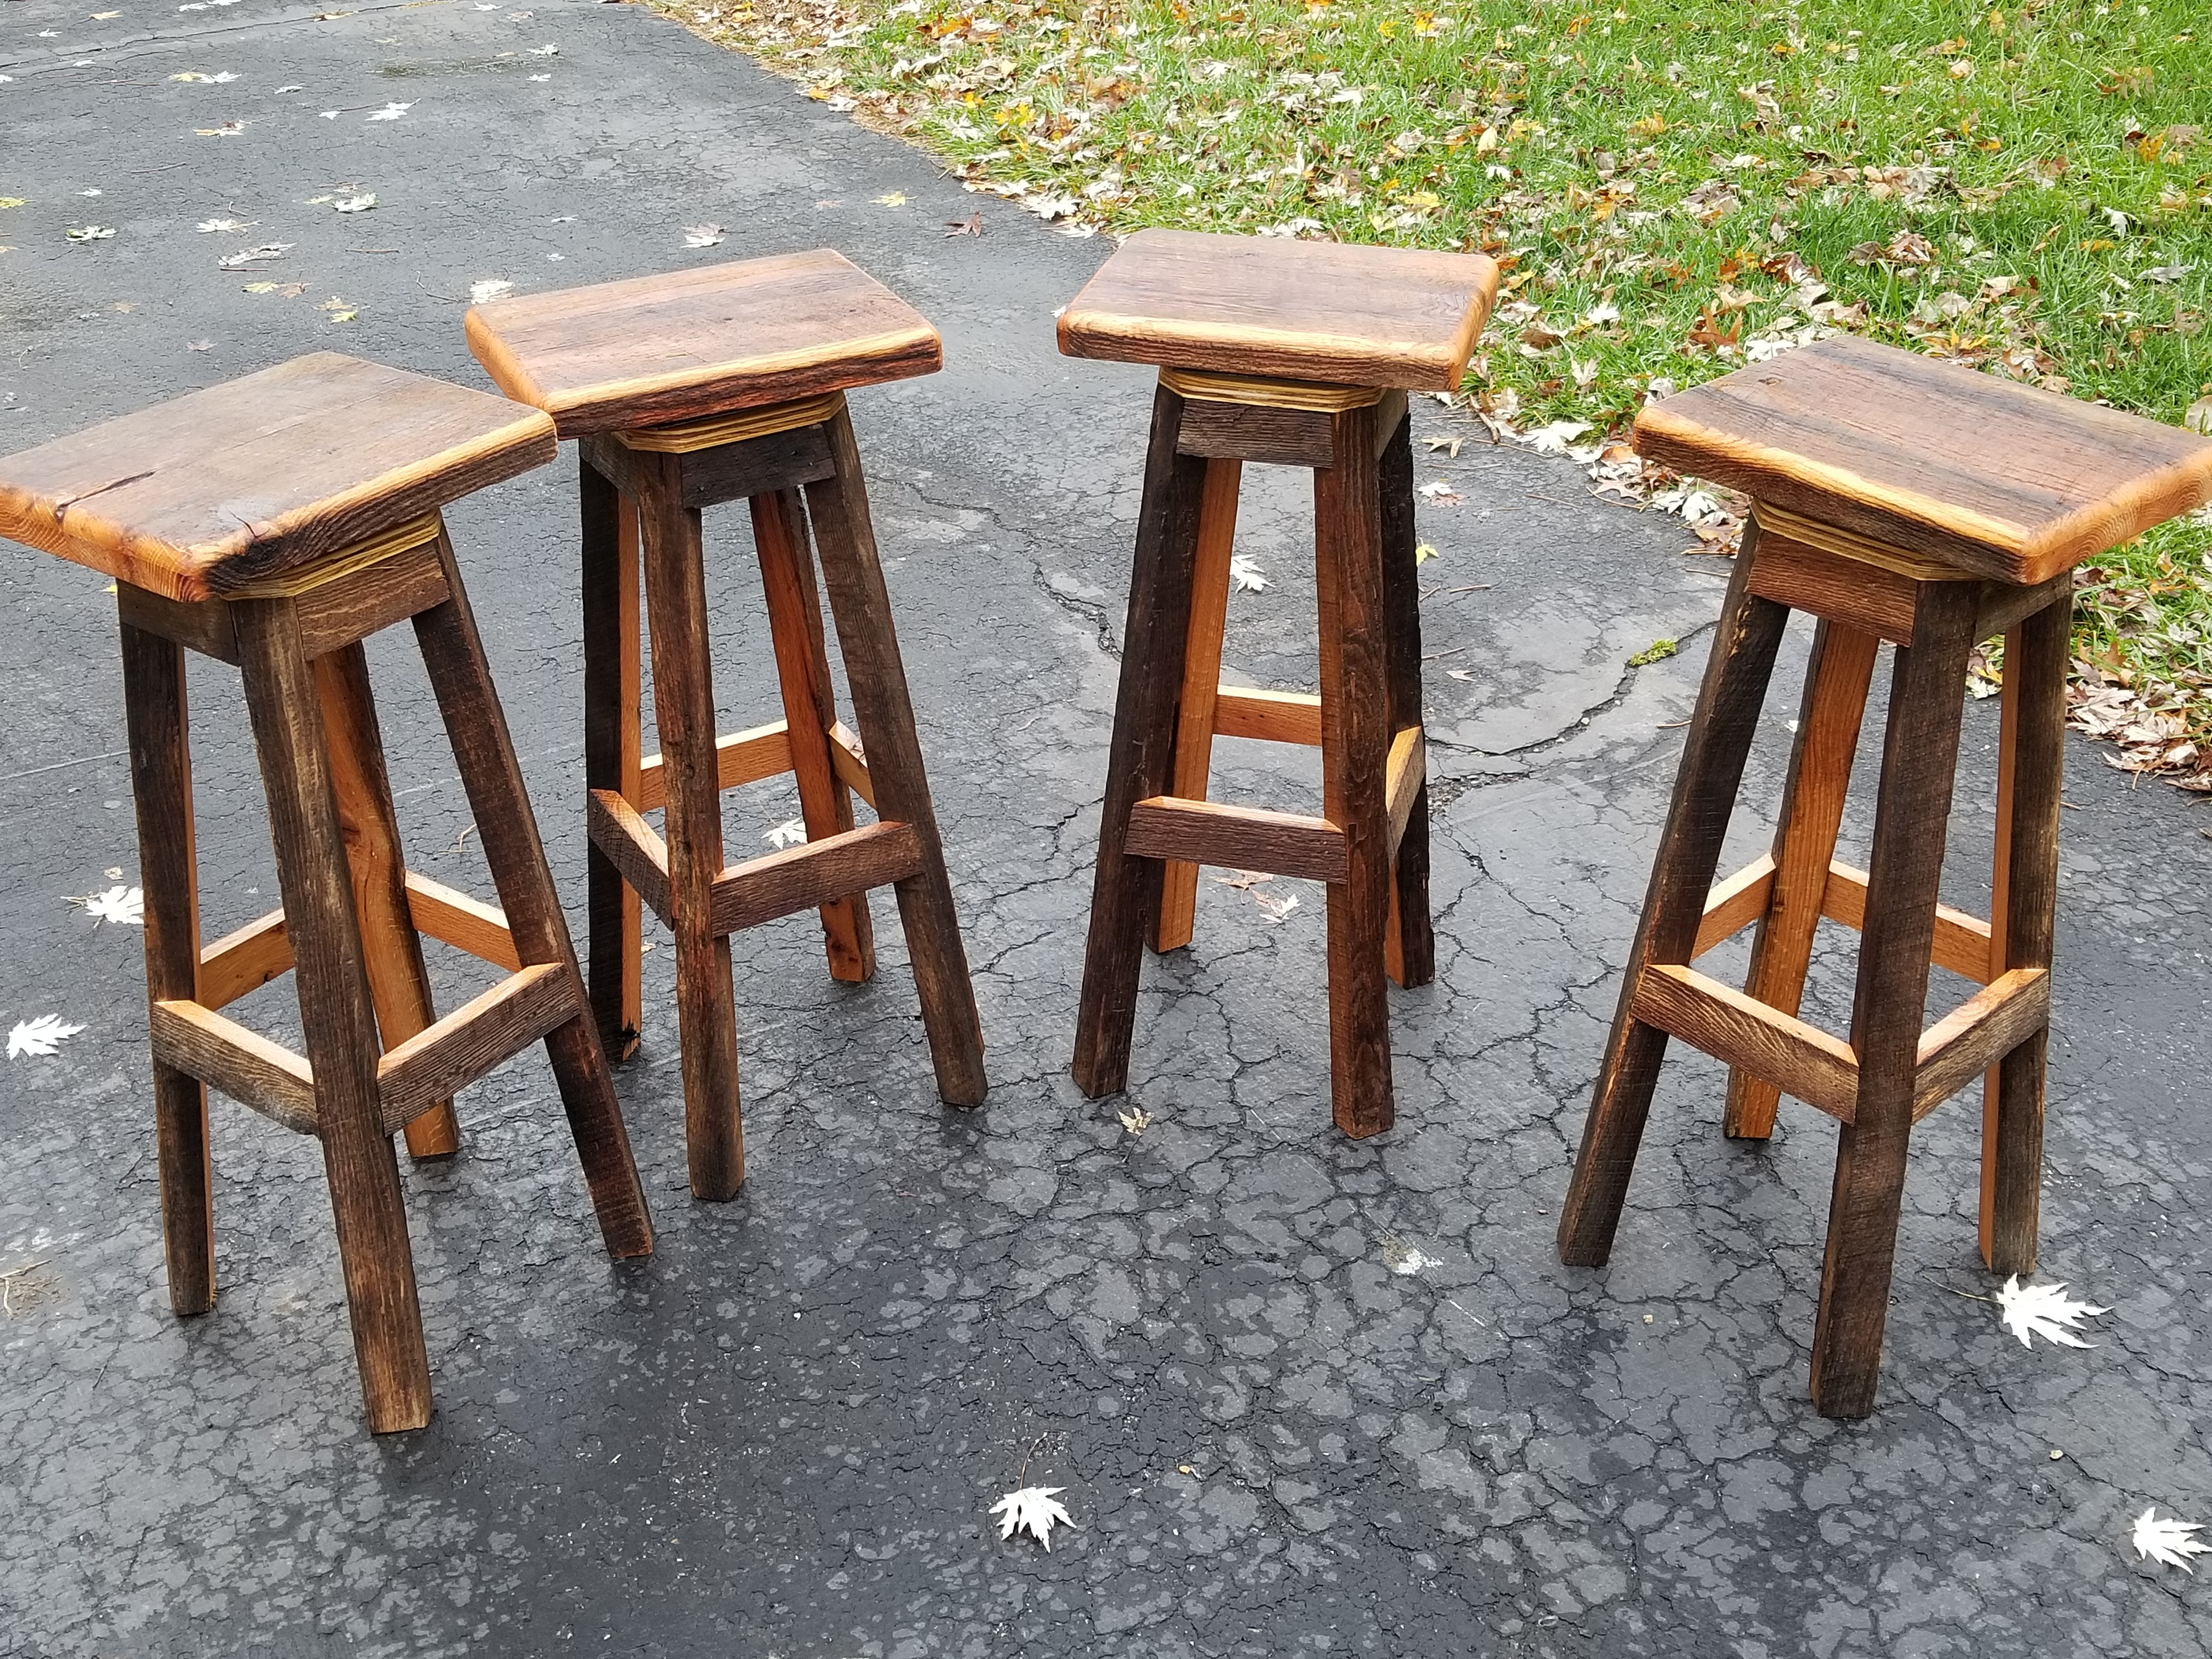 Buy Hand Crafted Rectangle Swivel Reclaimed Wooden Bar Stools With Free Shipping Made To Order From Heartland Woodworking And Furniture Custommade Com